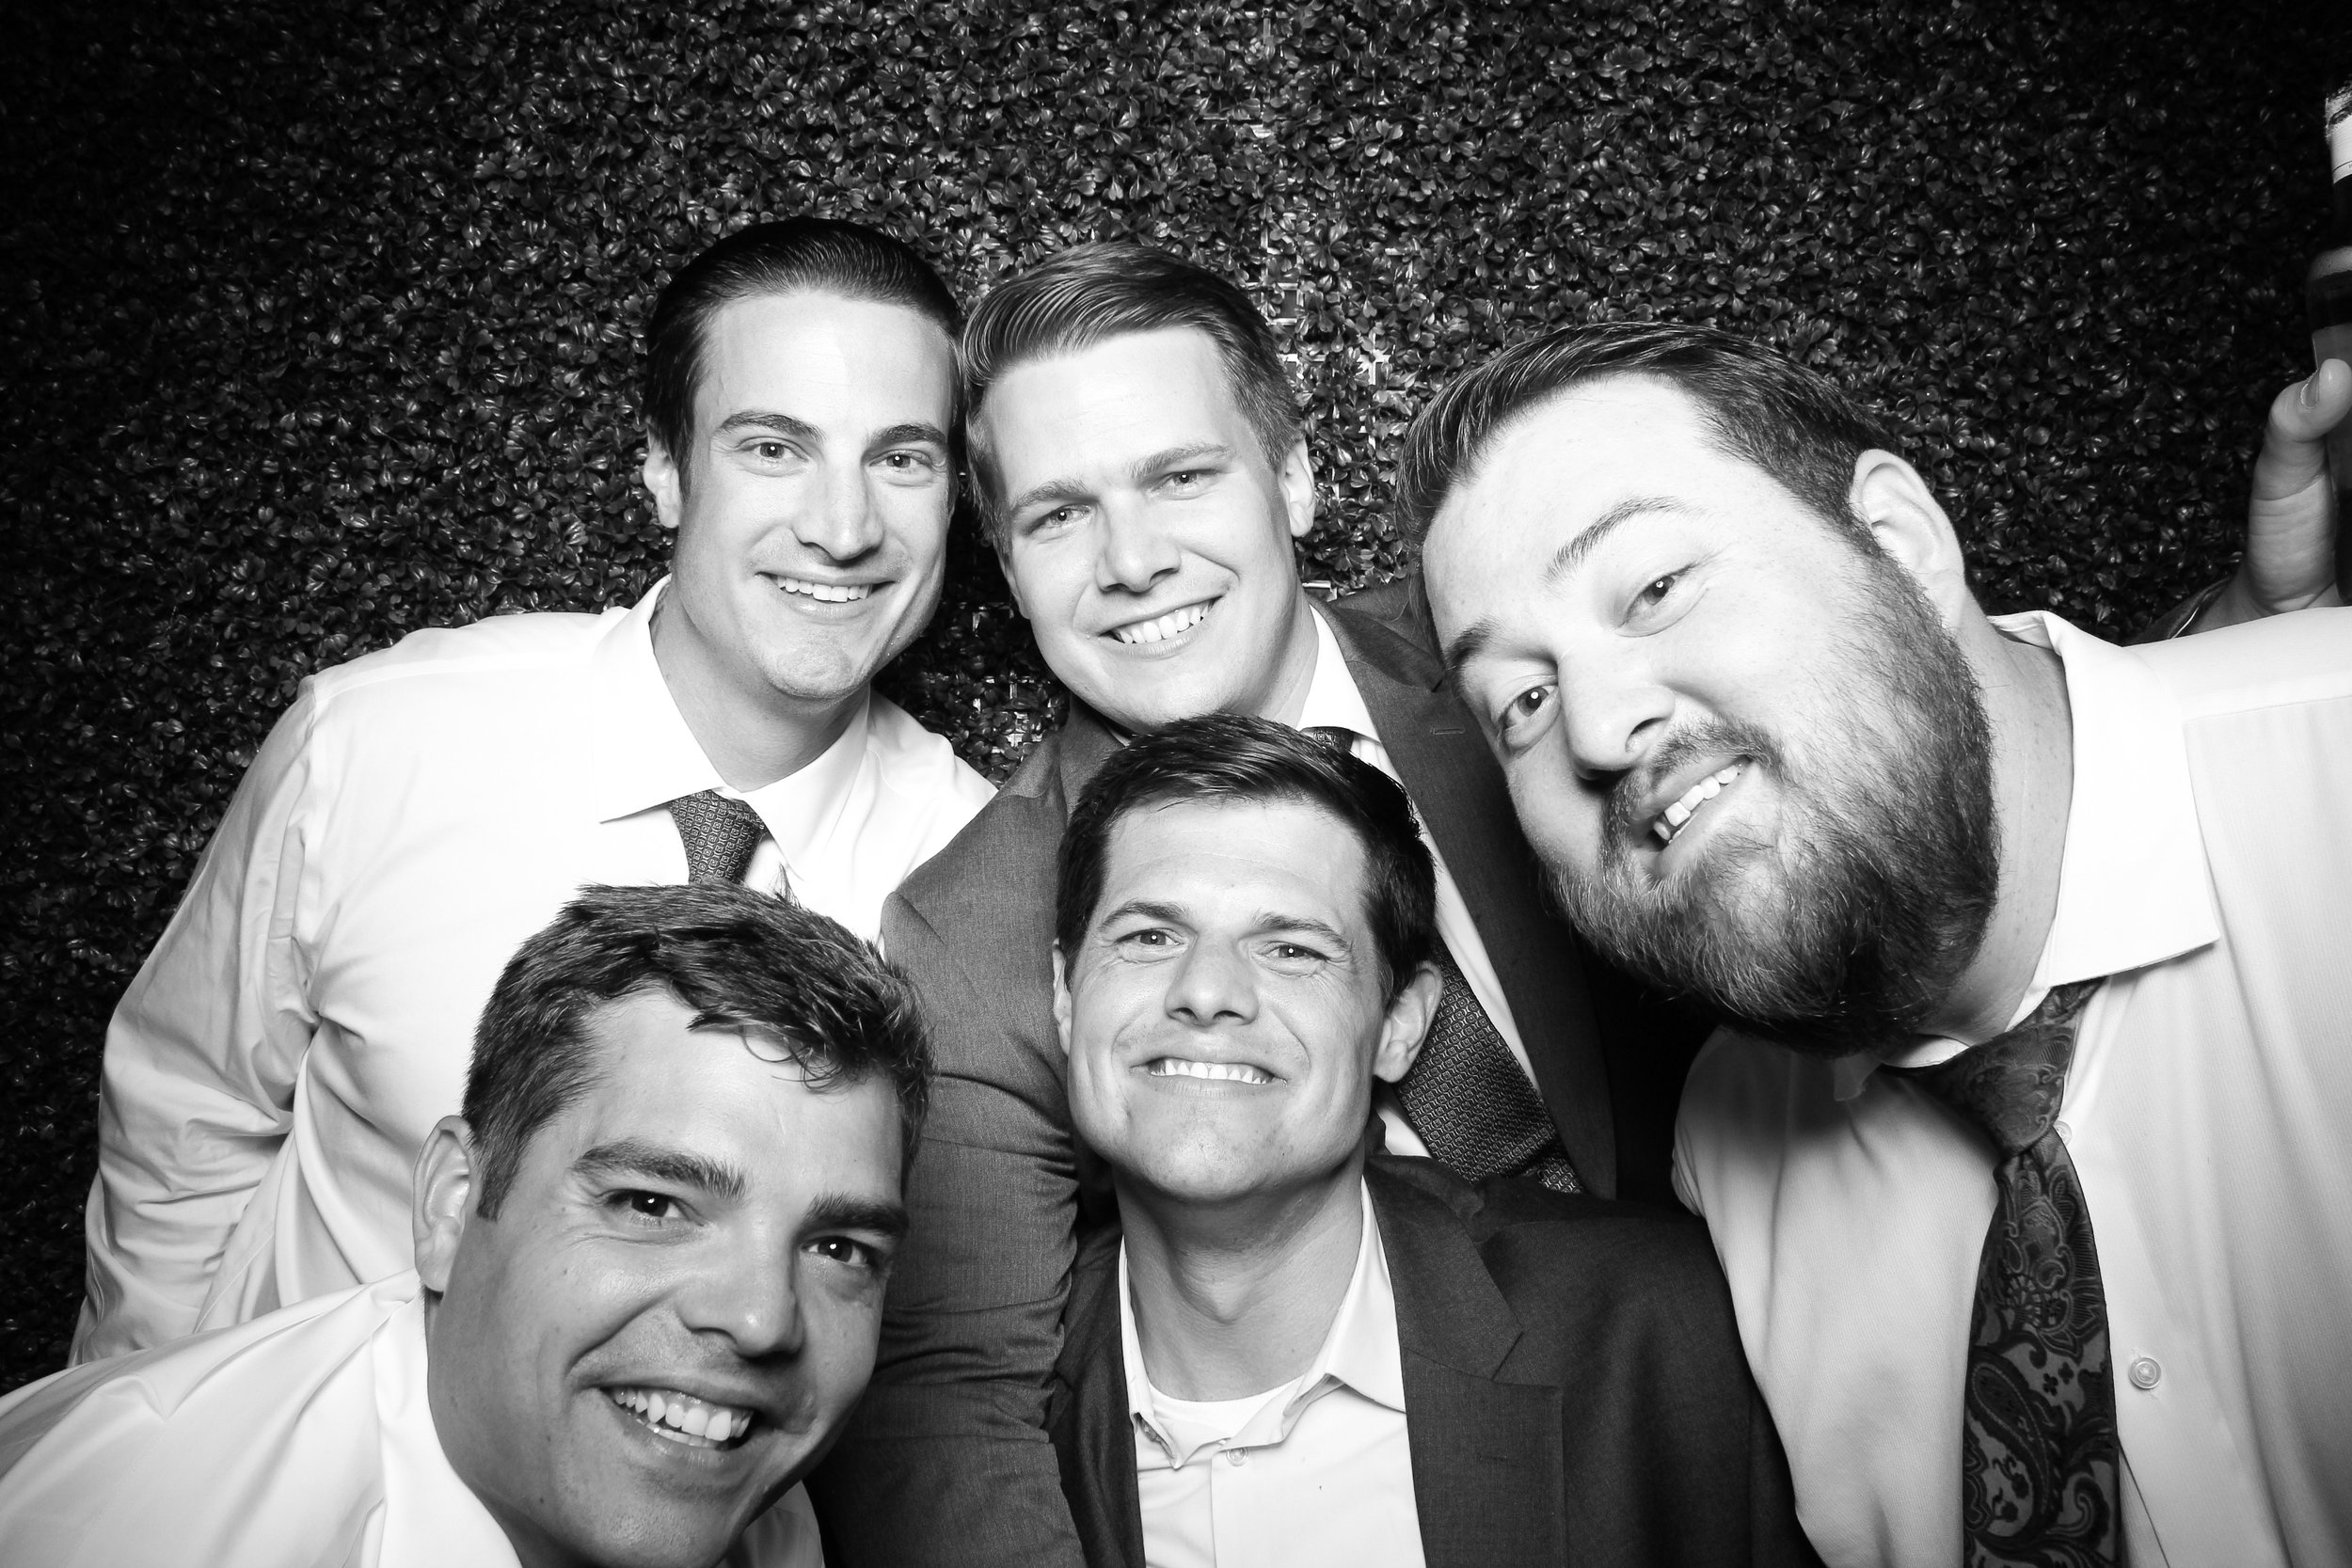 Ivy_Room_Chicago_Photo_Booth_Wedding_15.jpg